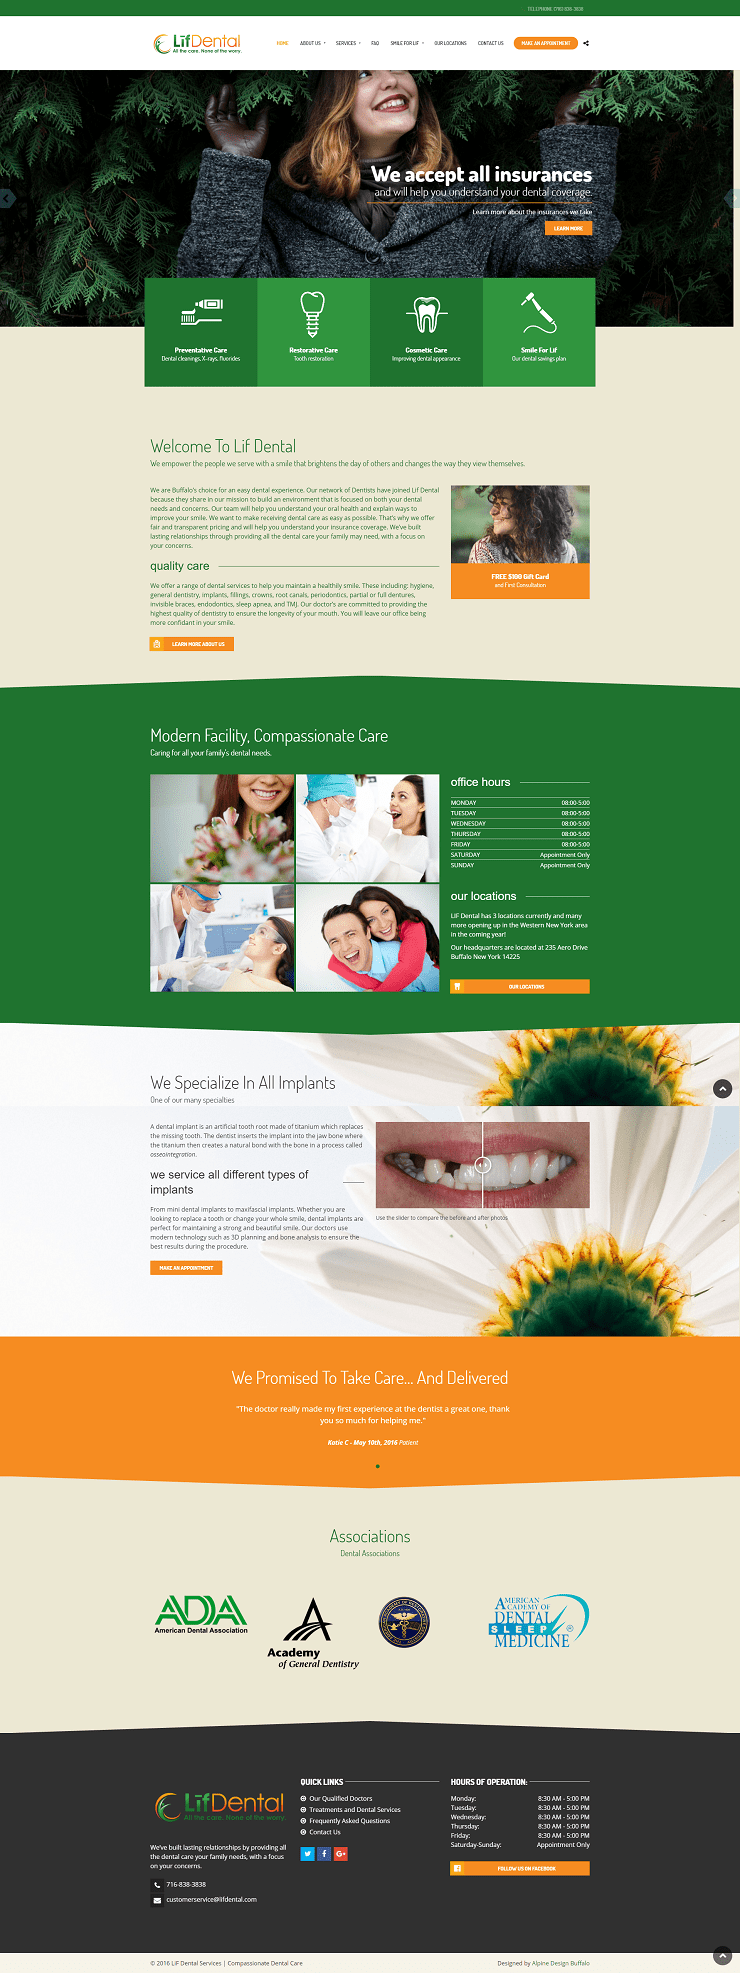 Lif Dental